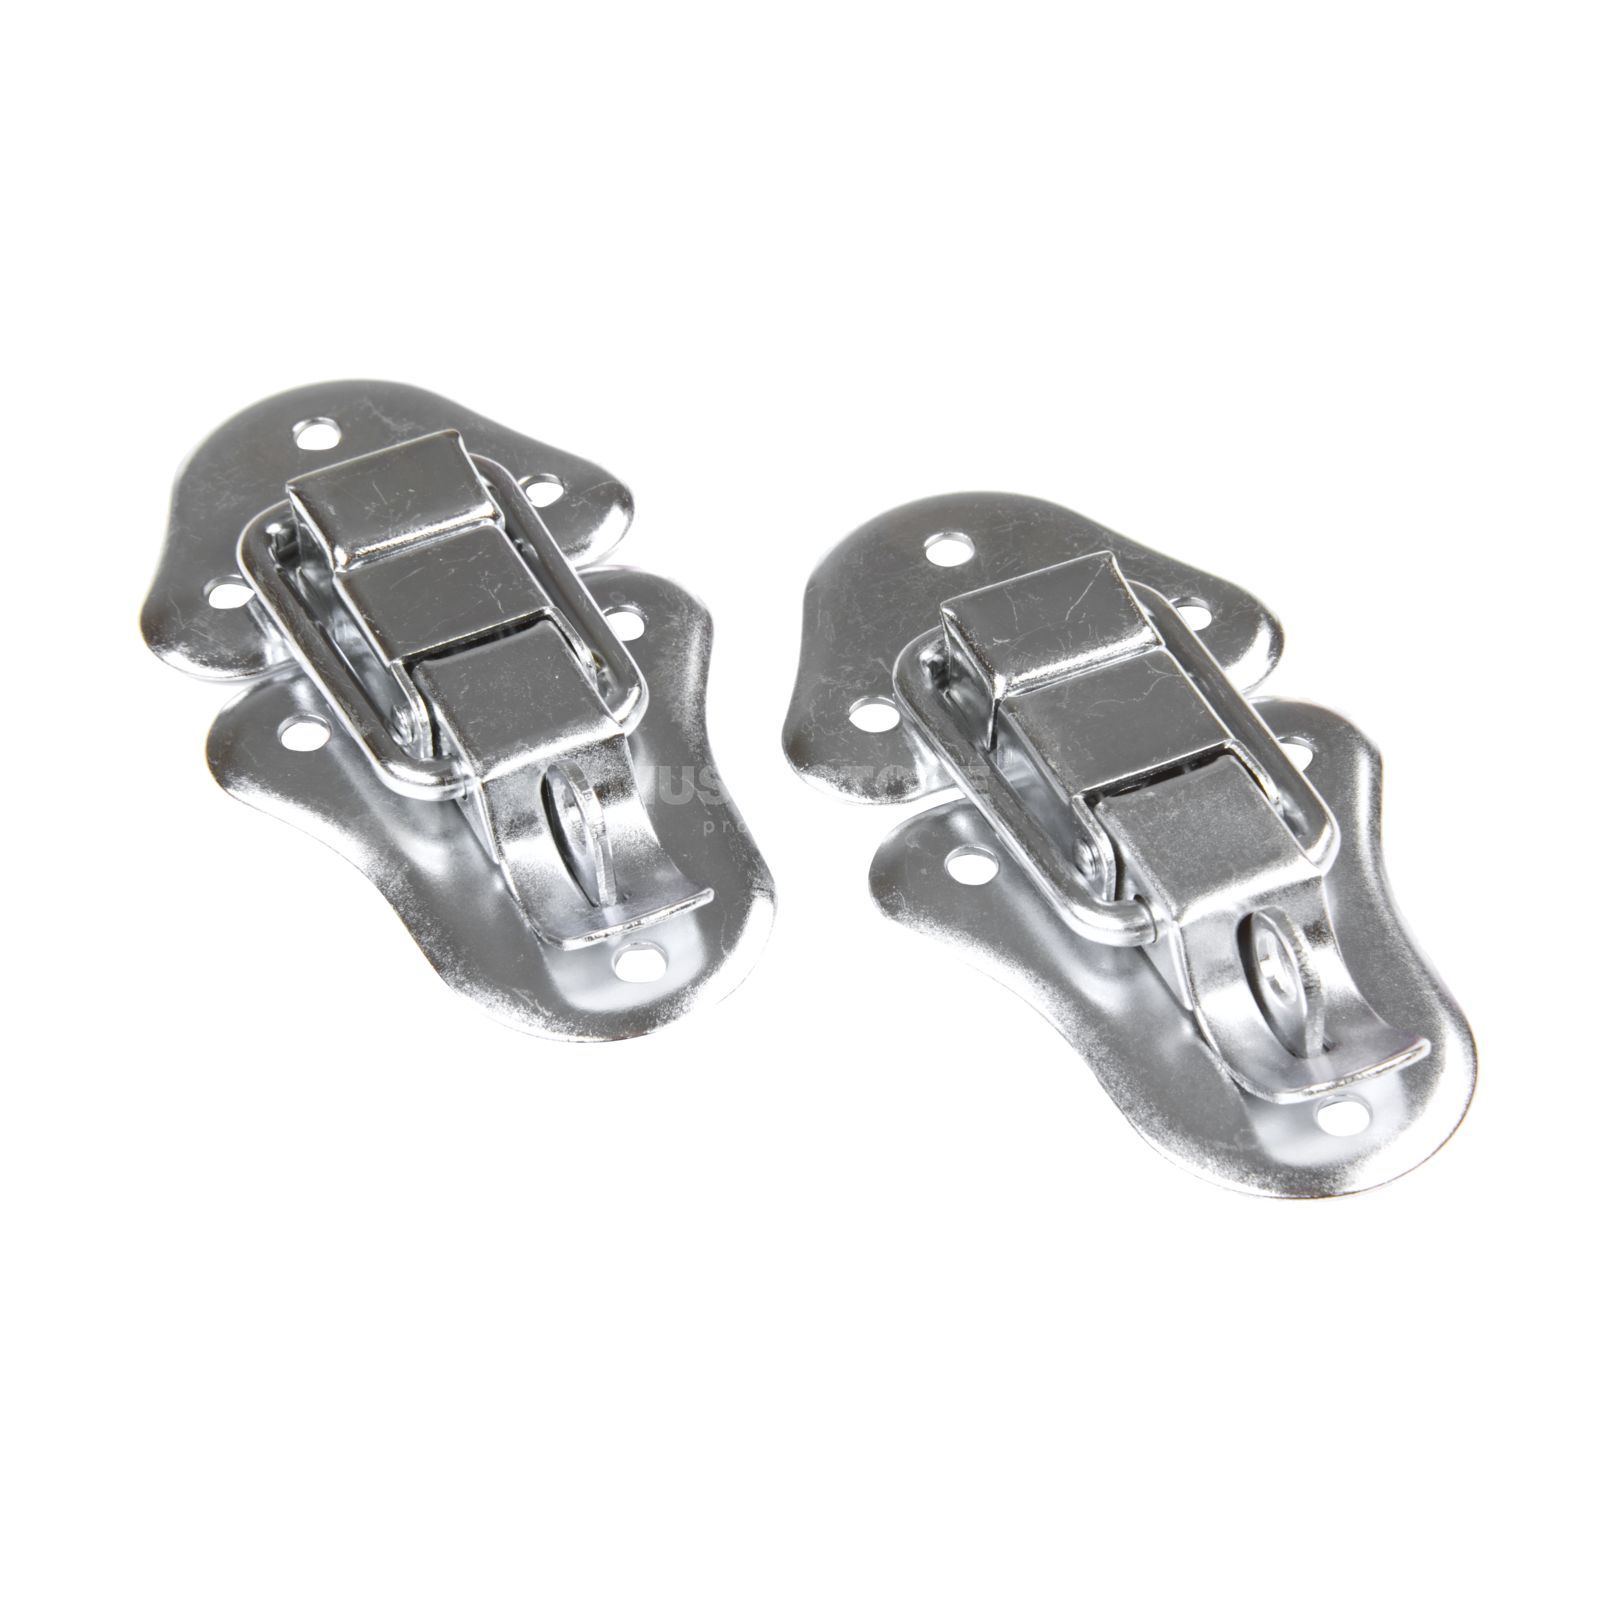 MUSIC STORE Snap Lock with Eyelet (pair) galvanized Produktbillede